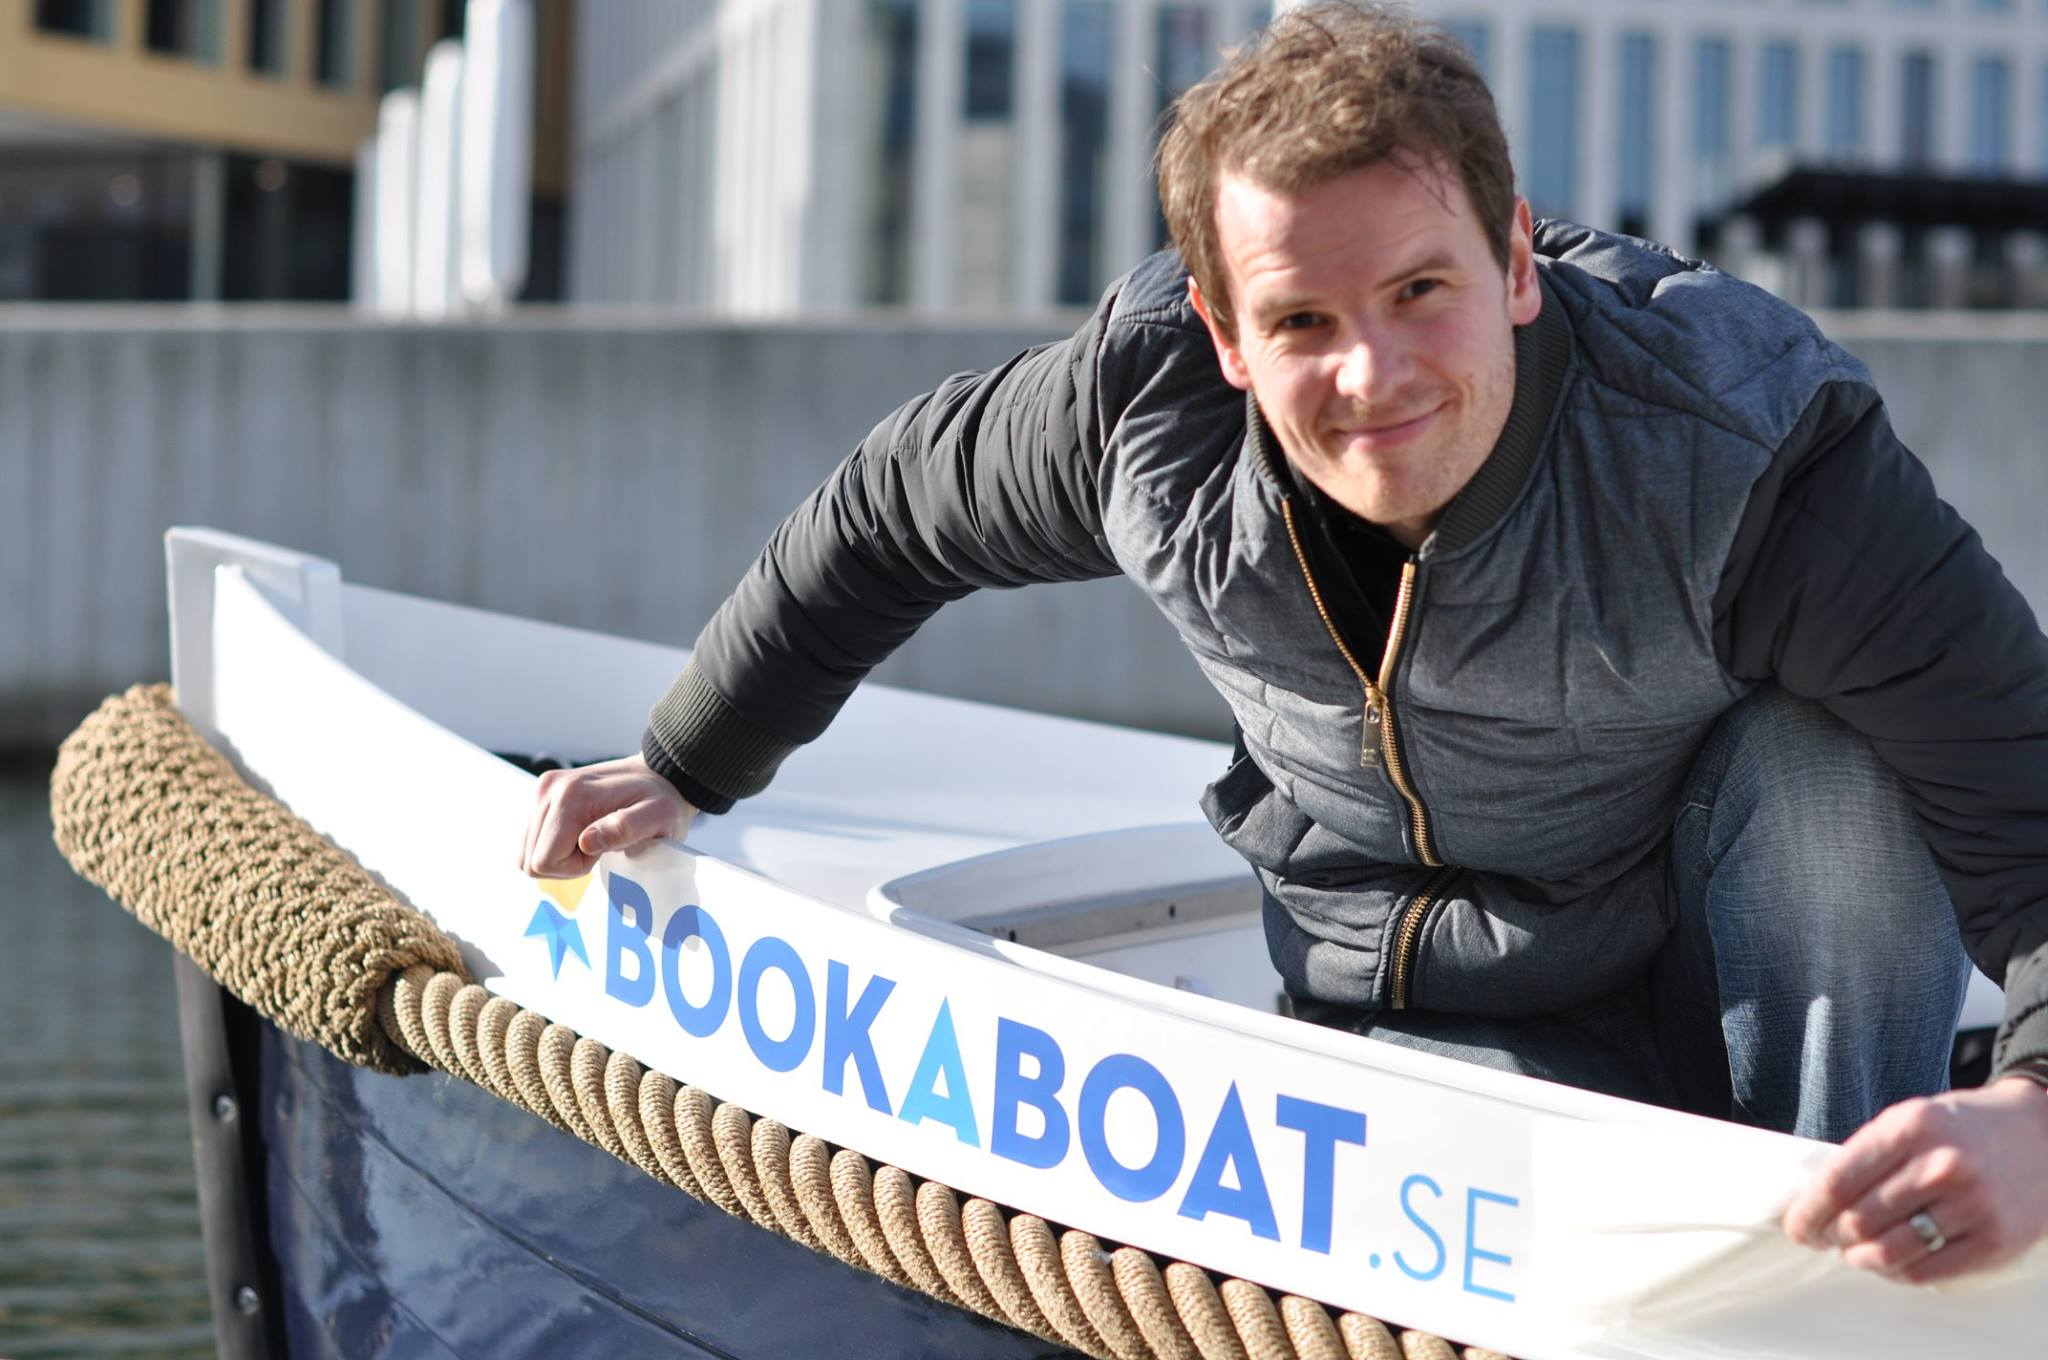 Placing the branding on the boat